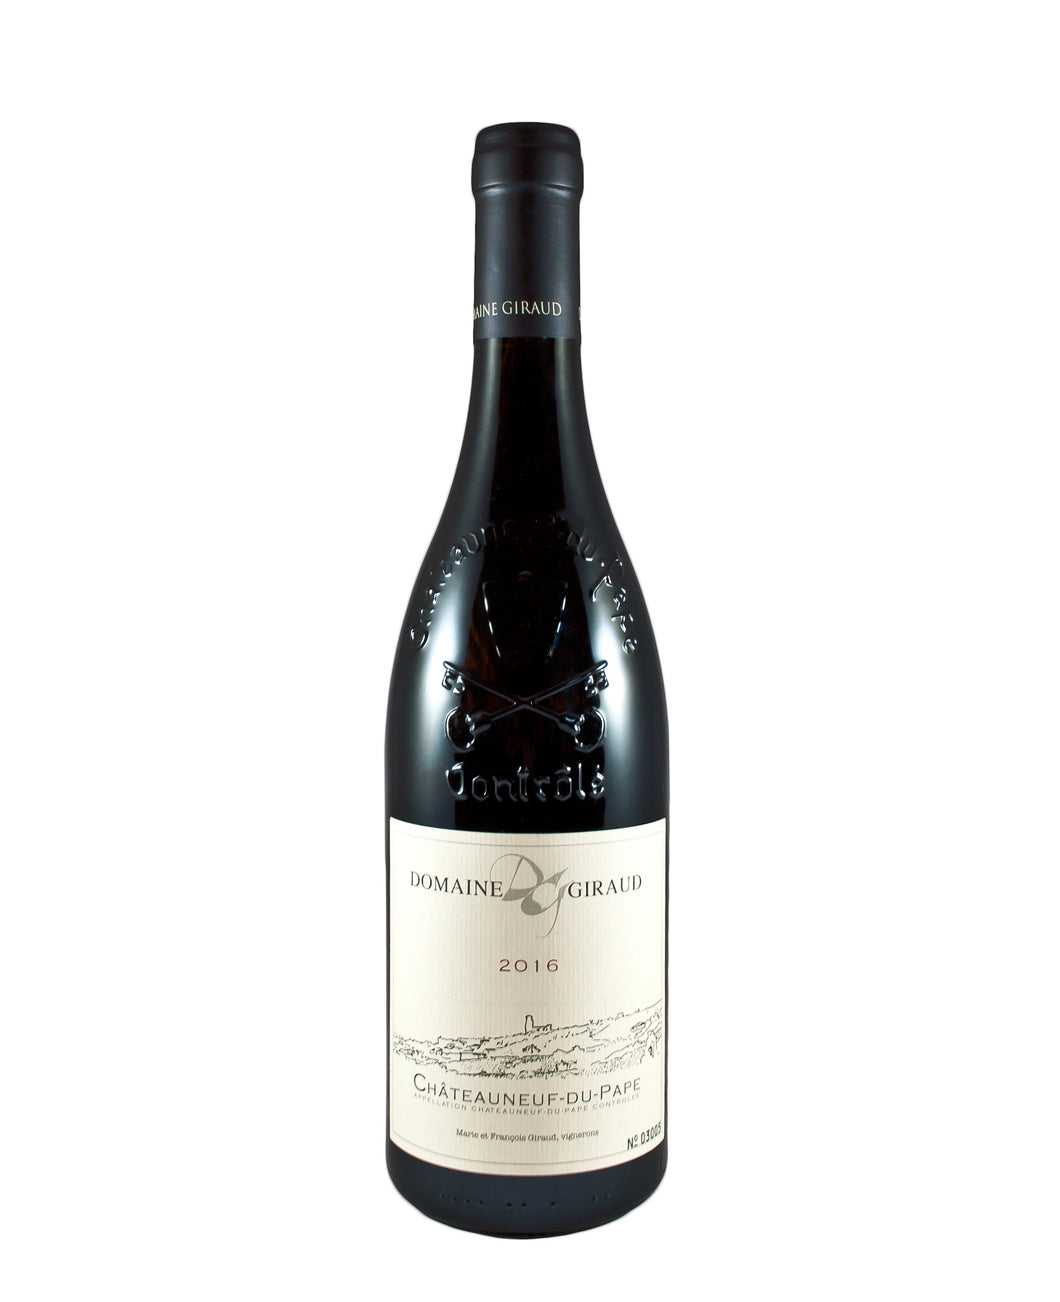 *6R* 2016 Domaine Giraud Chateauneuf du Pape (Rhone Valley, FR)